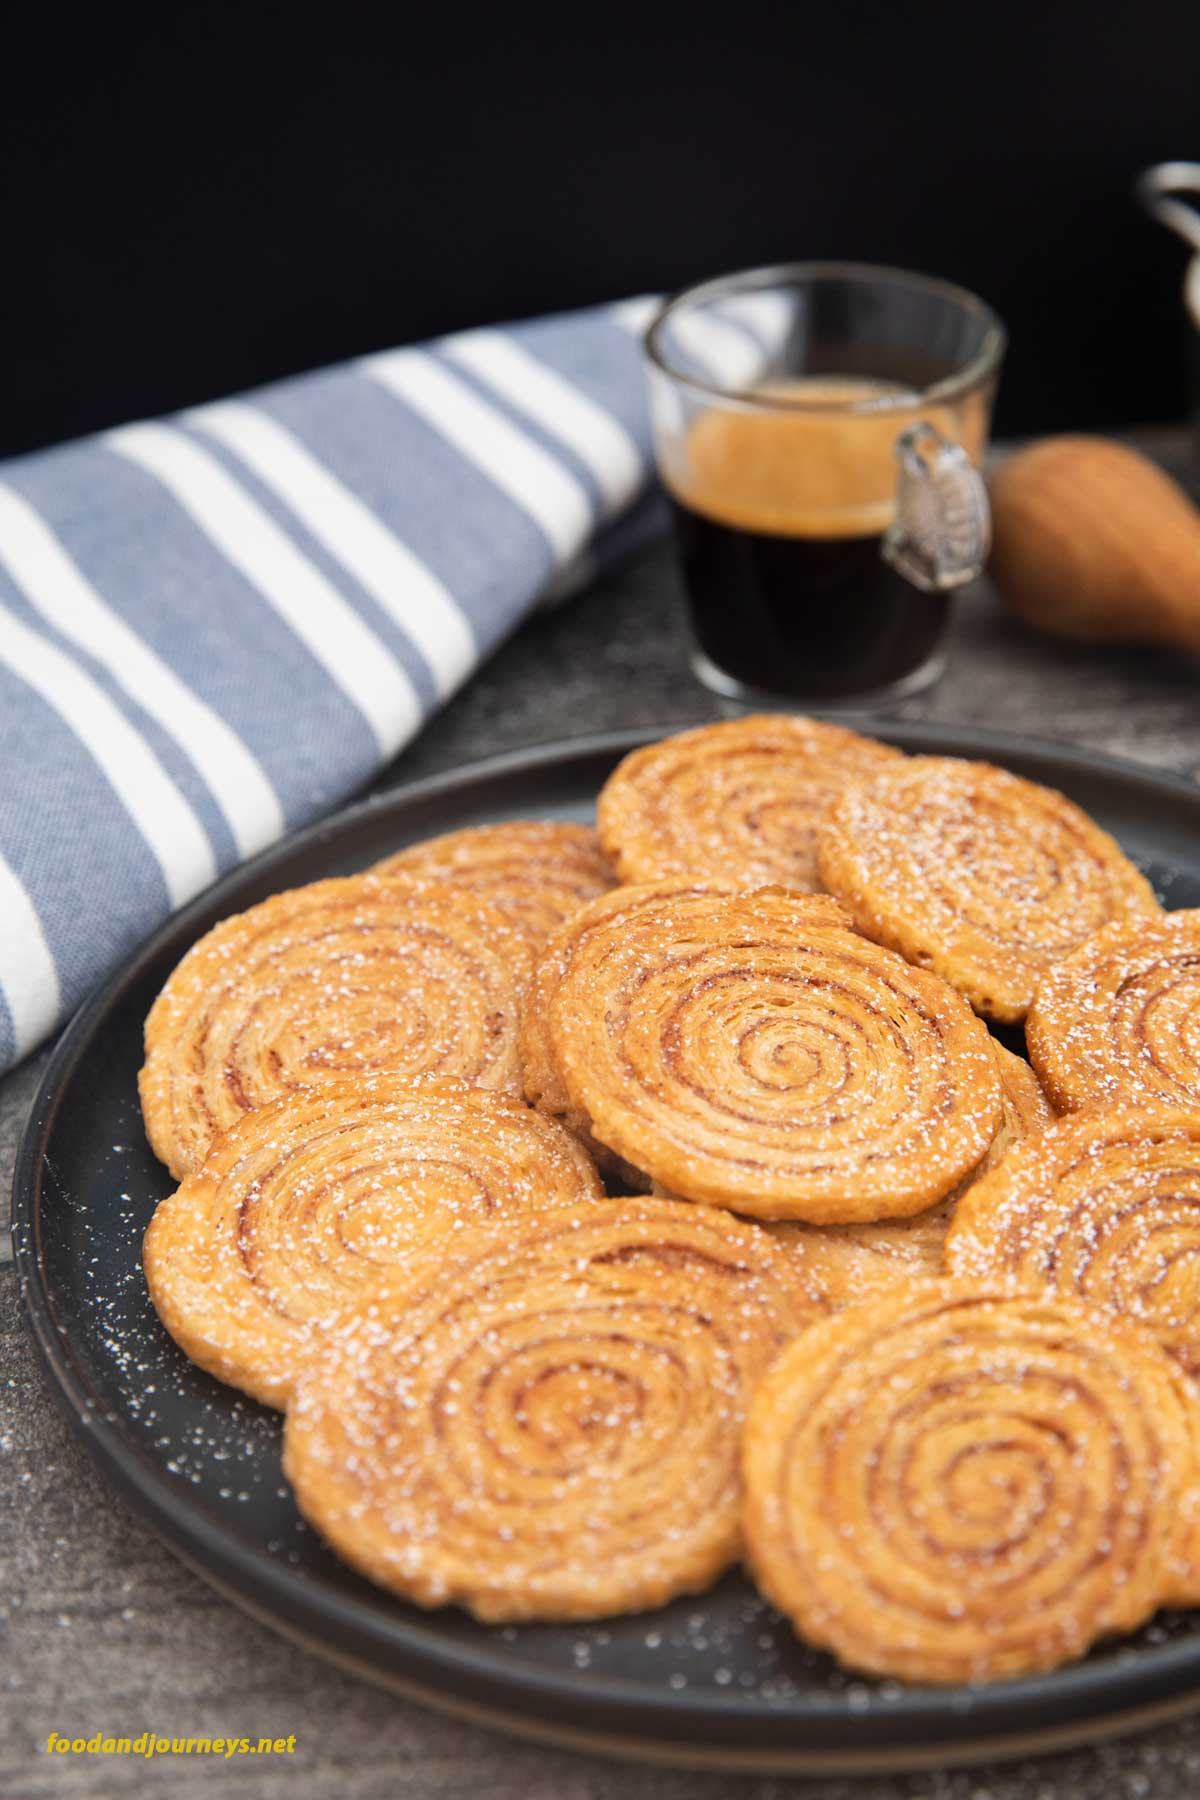 A plate full of freshly baked Pinwheel Cookies, sprinkled with sugar, ready for serving.